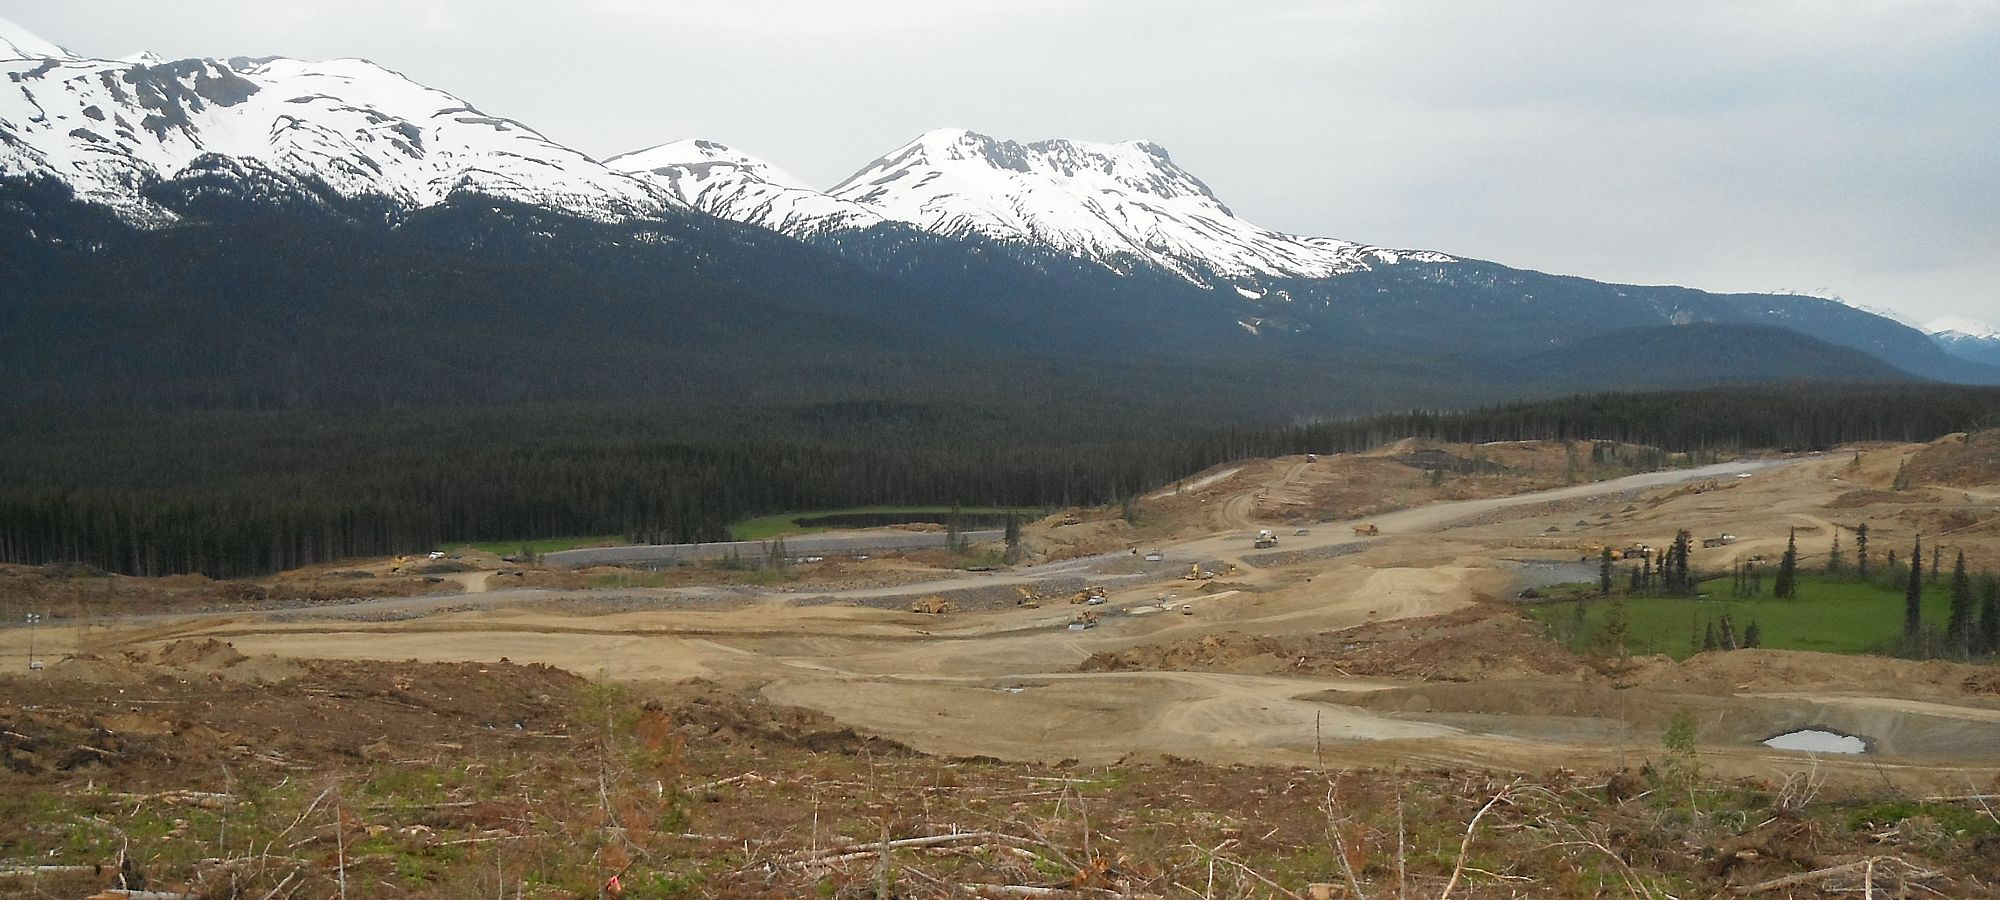 Huckleberry Mine Expansion